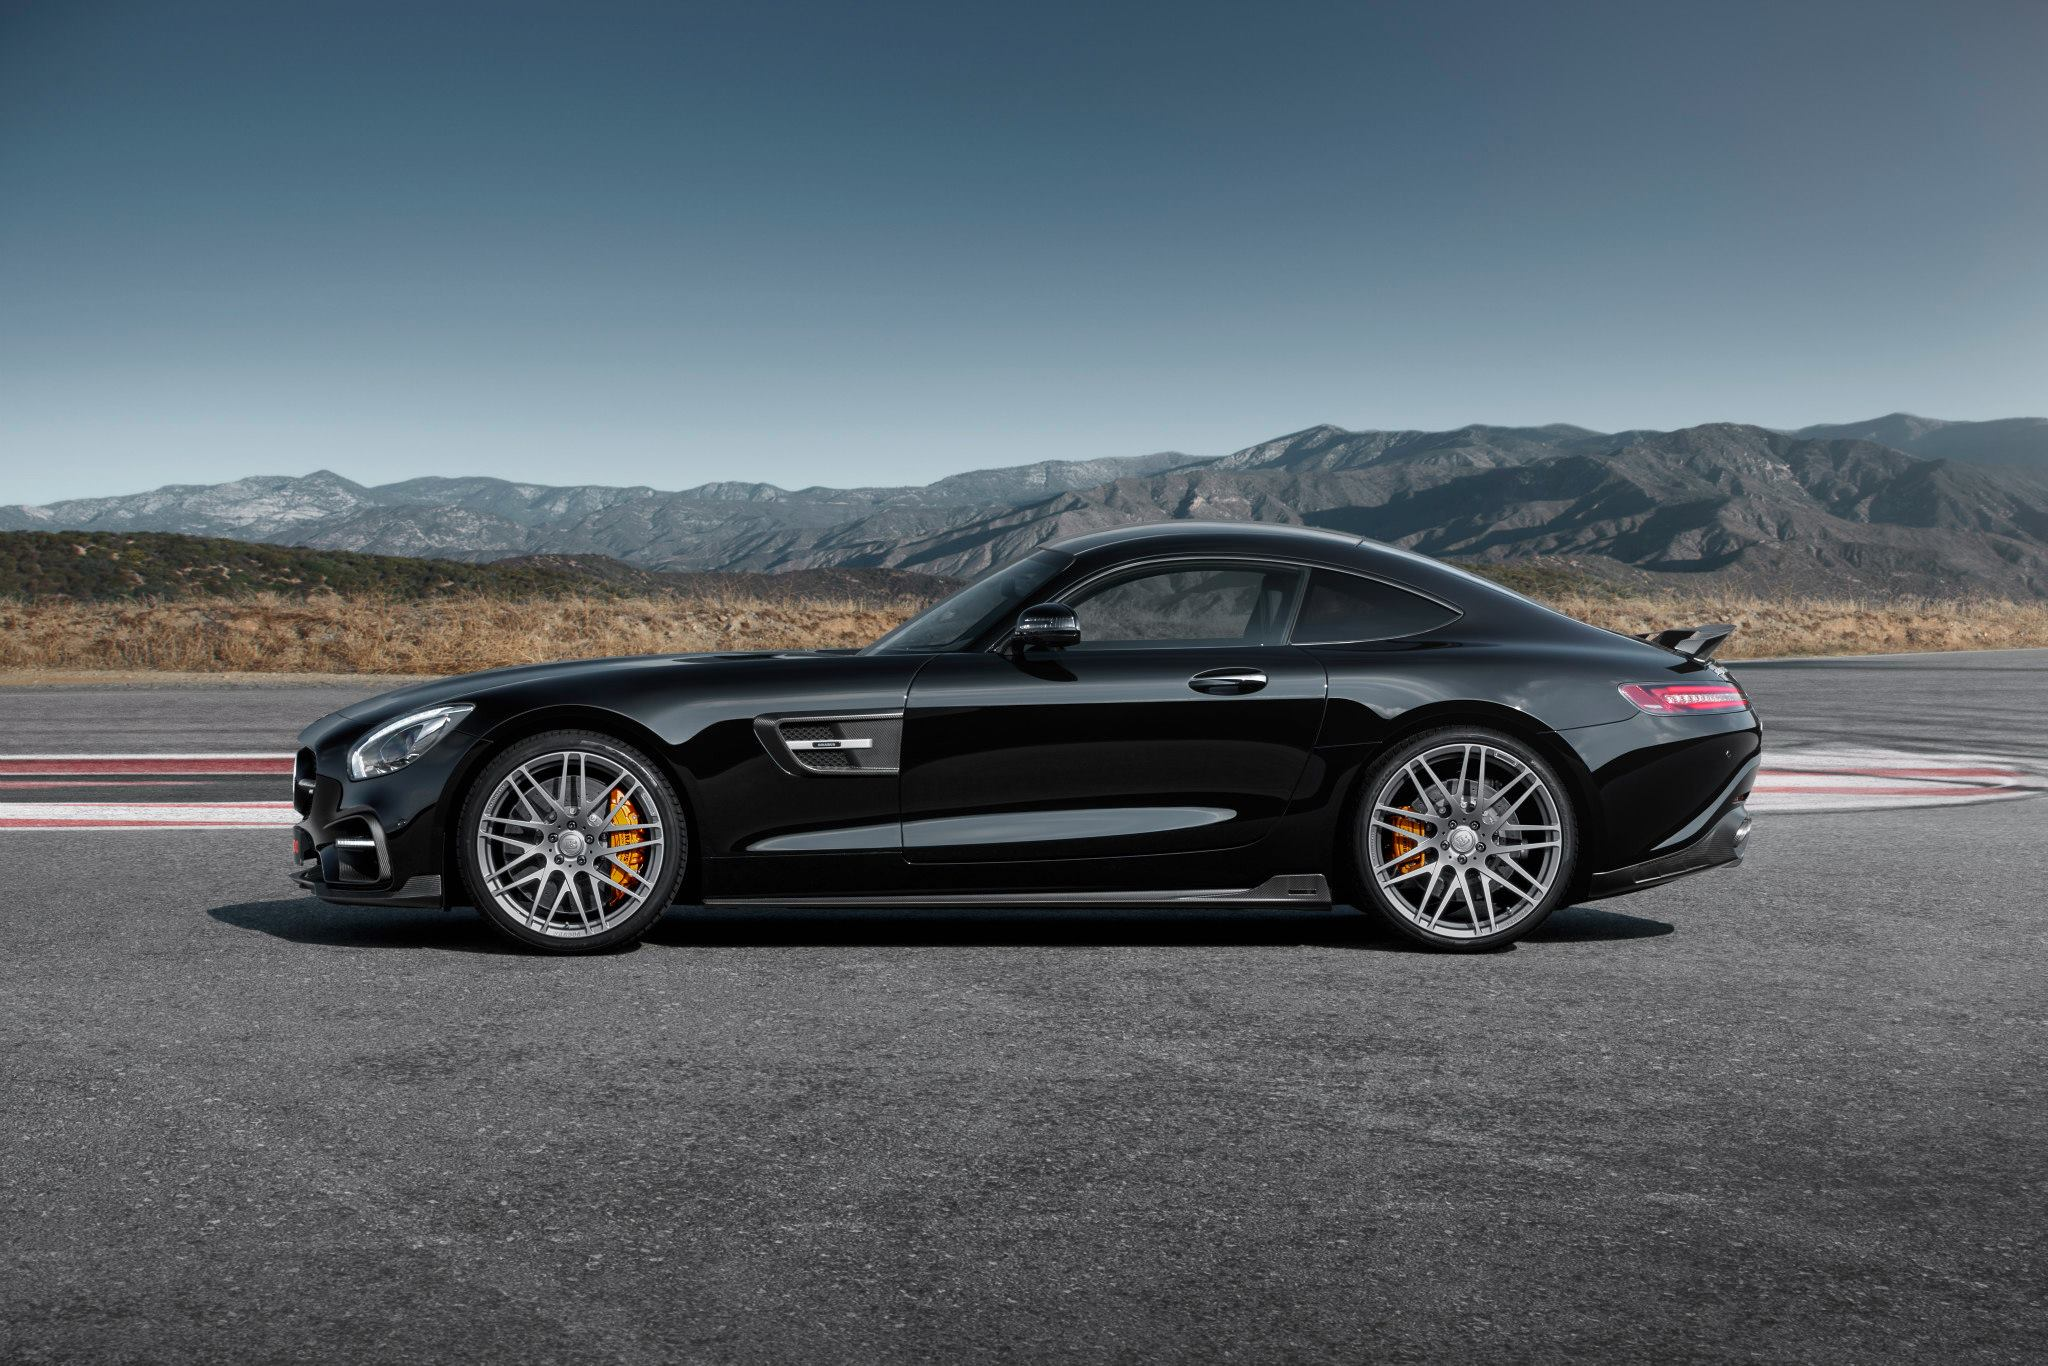 brabus reveals tuned mercedes amg gt s with 600 hp ahead of frankfurt autoevolution. Black Bedroom Furniture Sets. Home Design Ideas